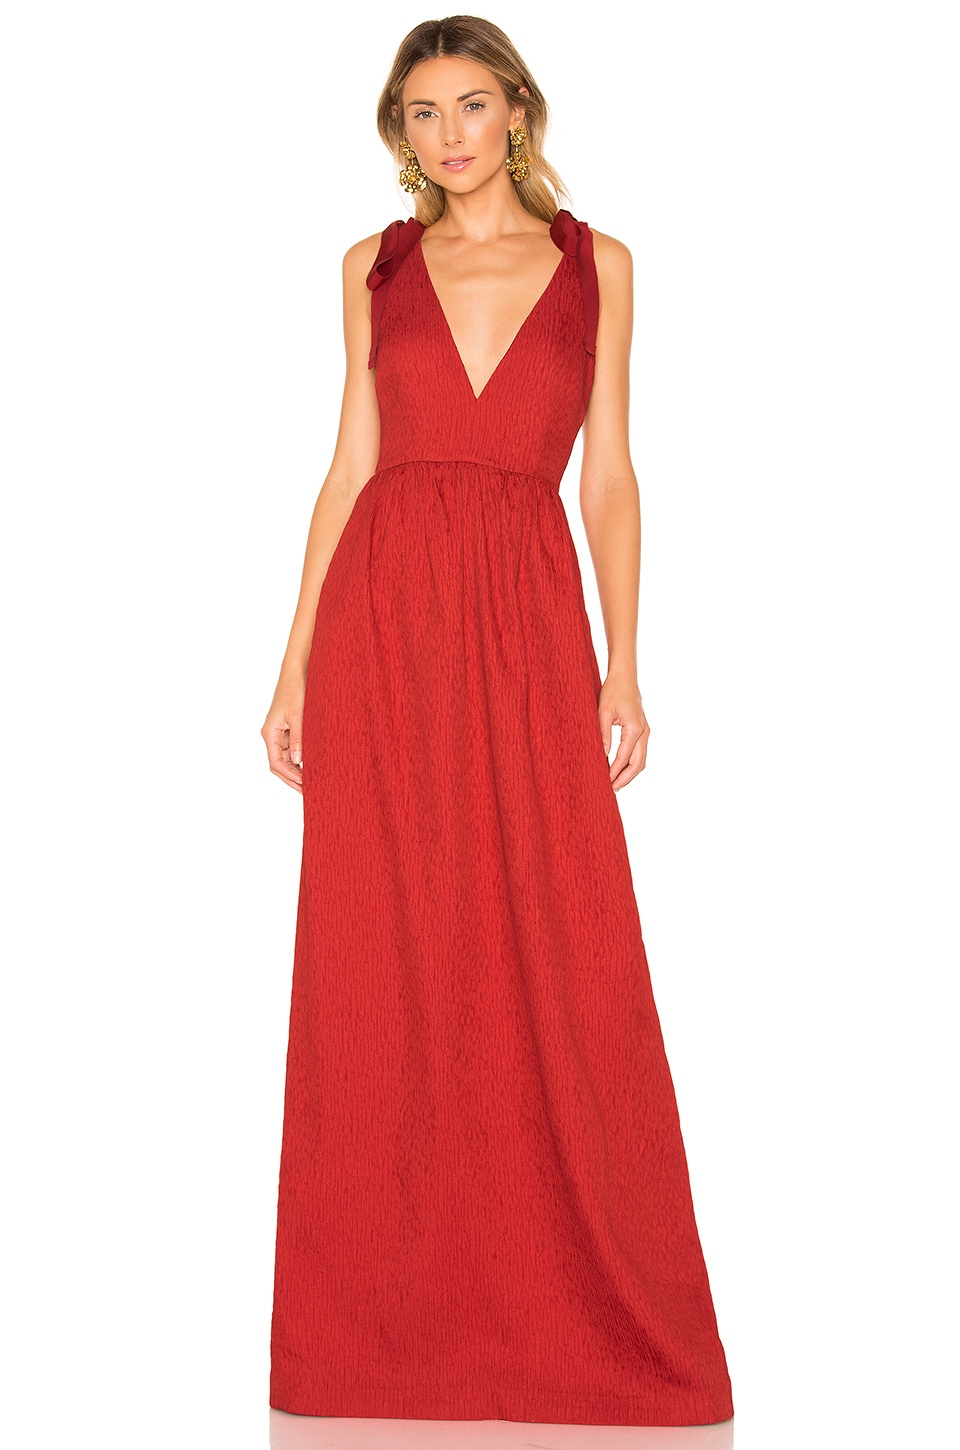 Rebecca Vallance Harlow Tie Gown in Red